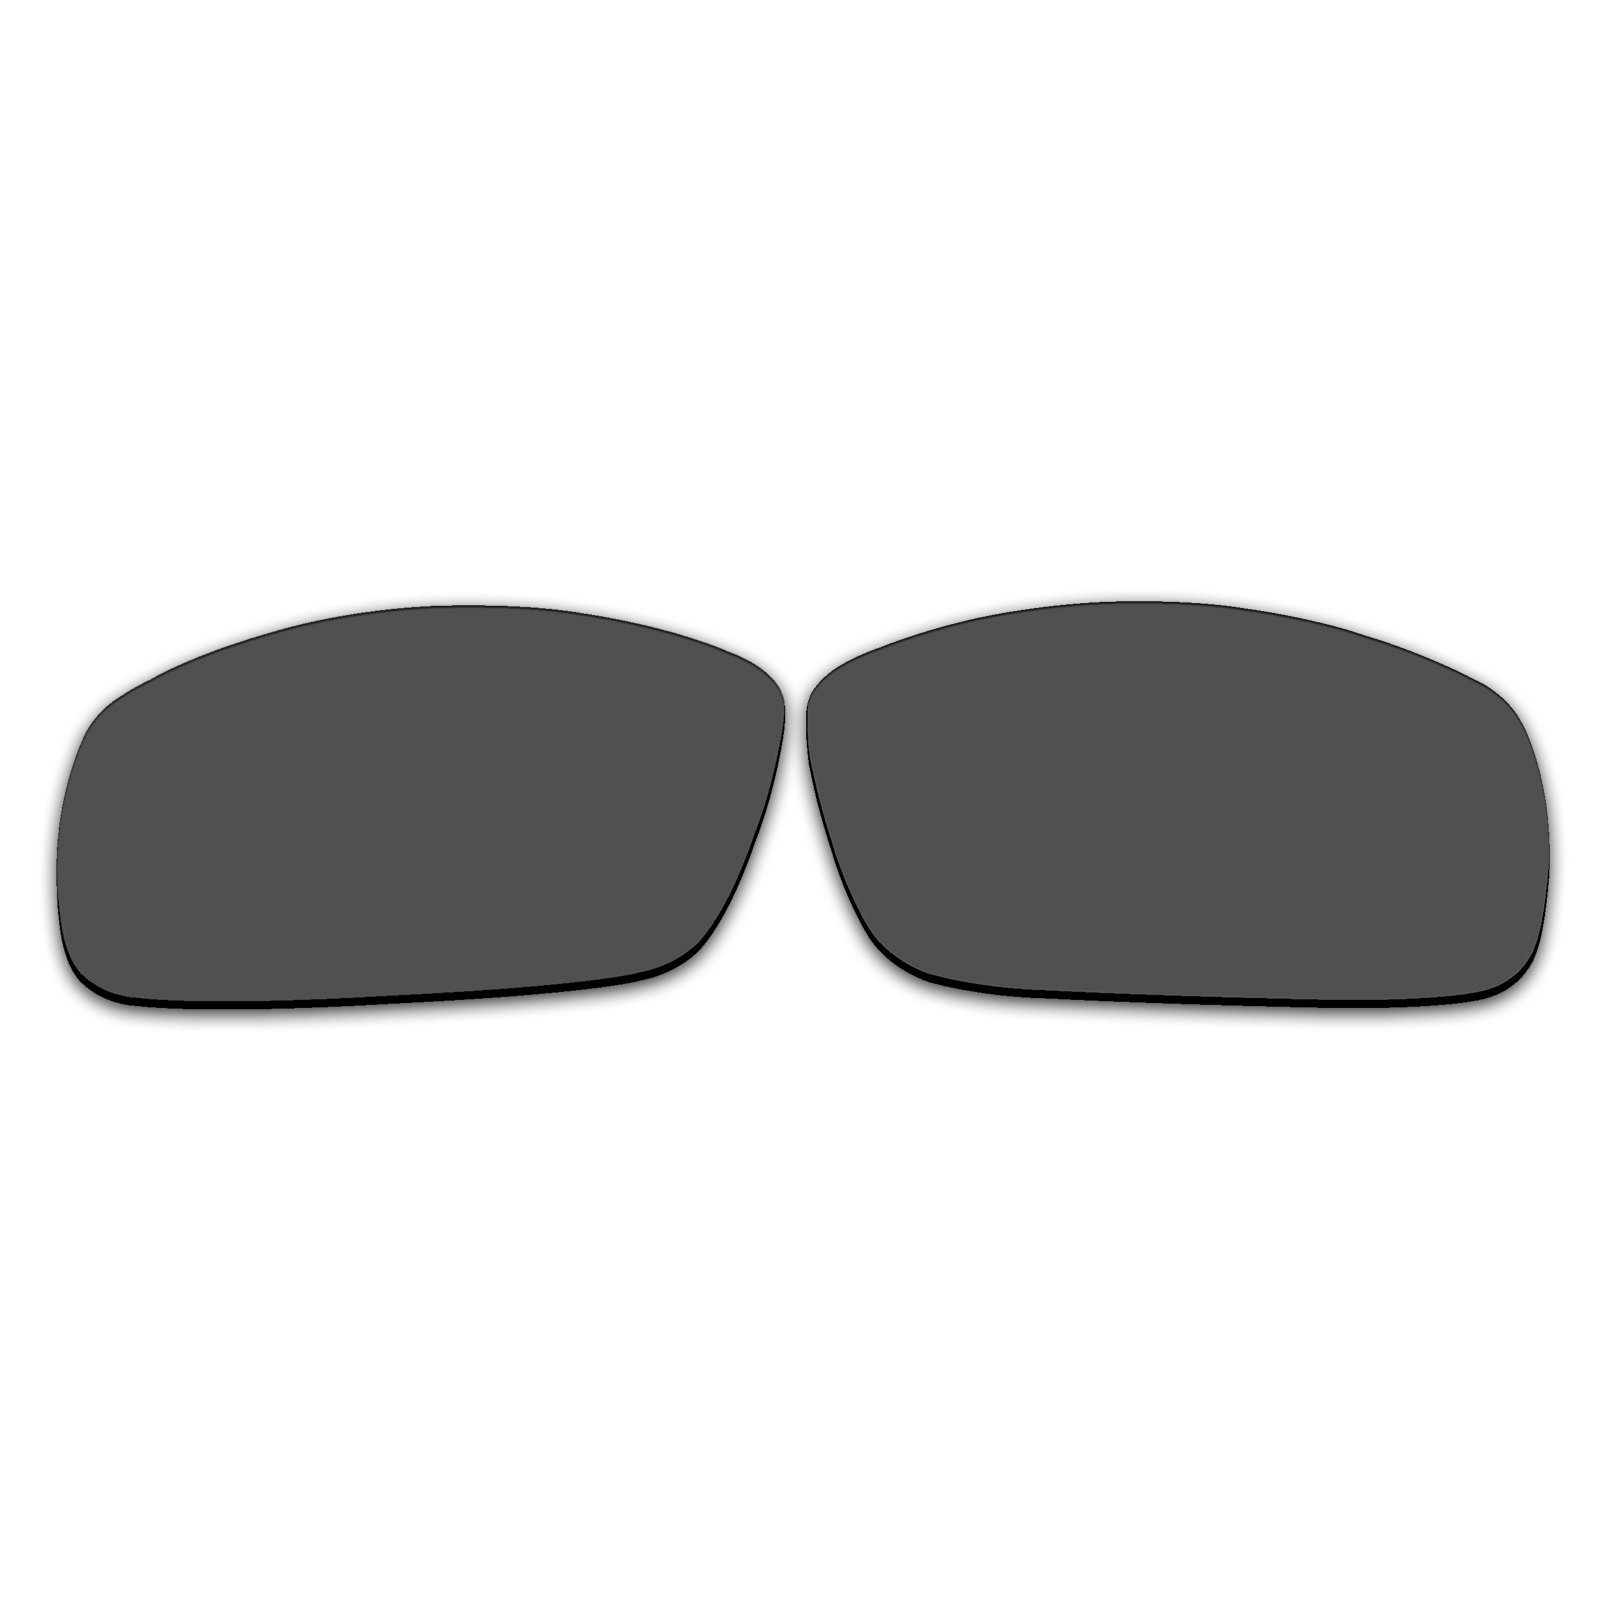 Polarized Replacement Sunglasses Lenses for Spy Optic Logan - Gray Mirror